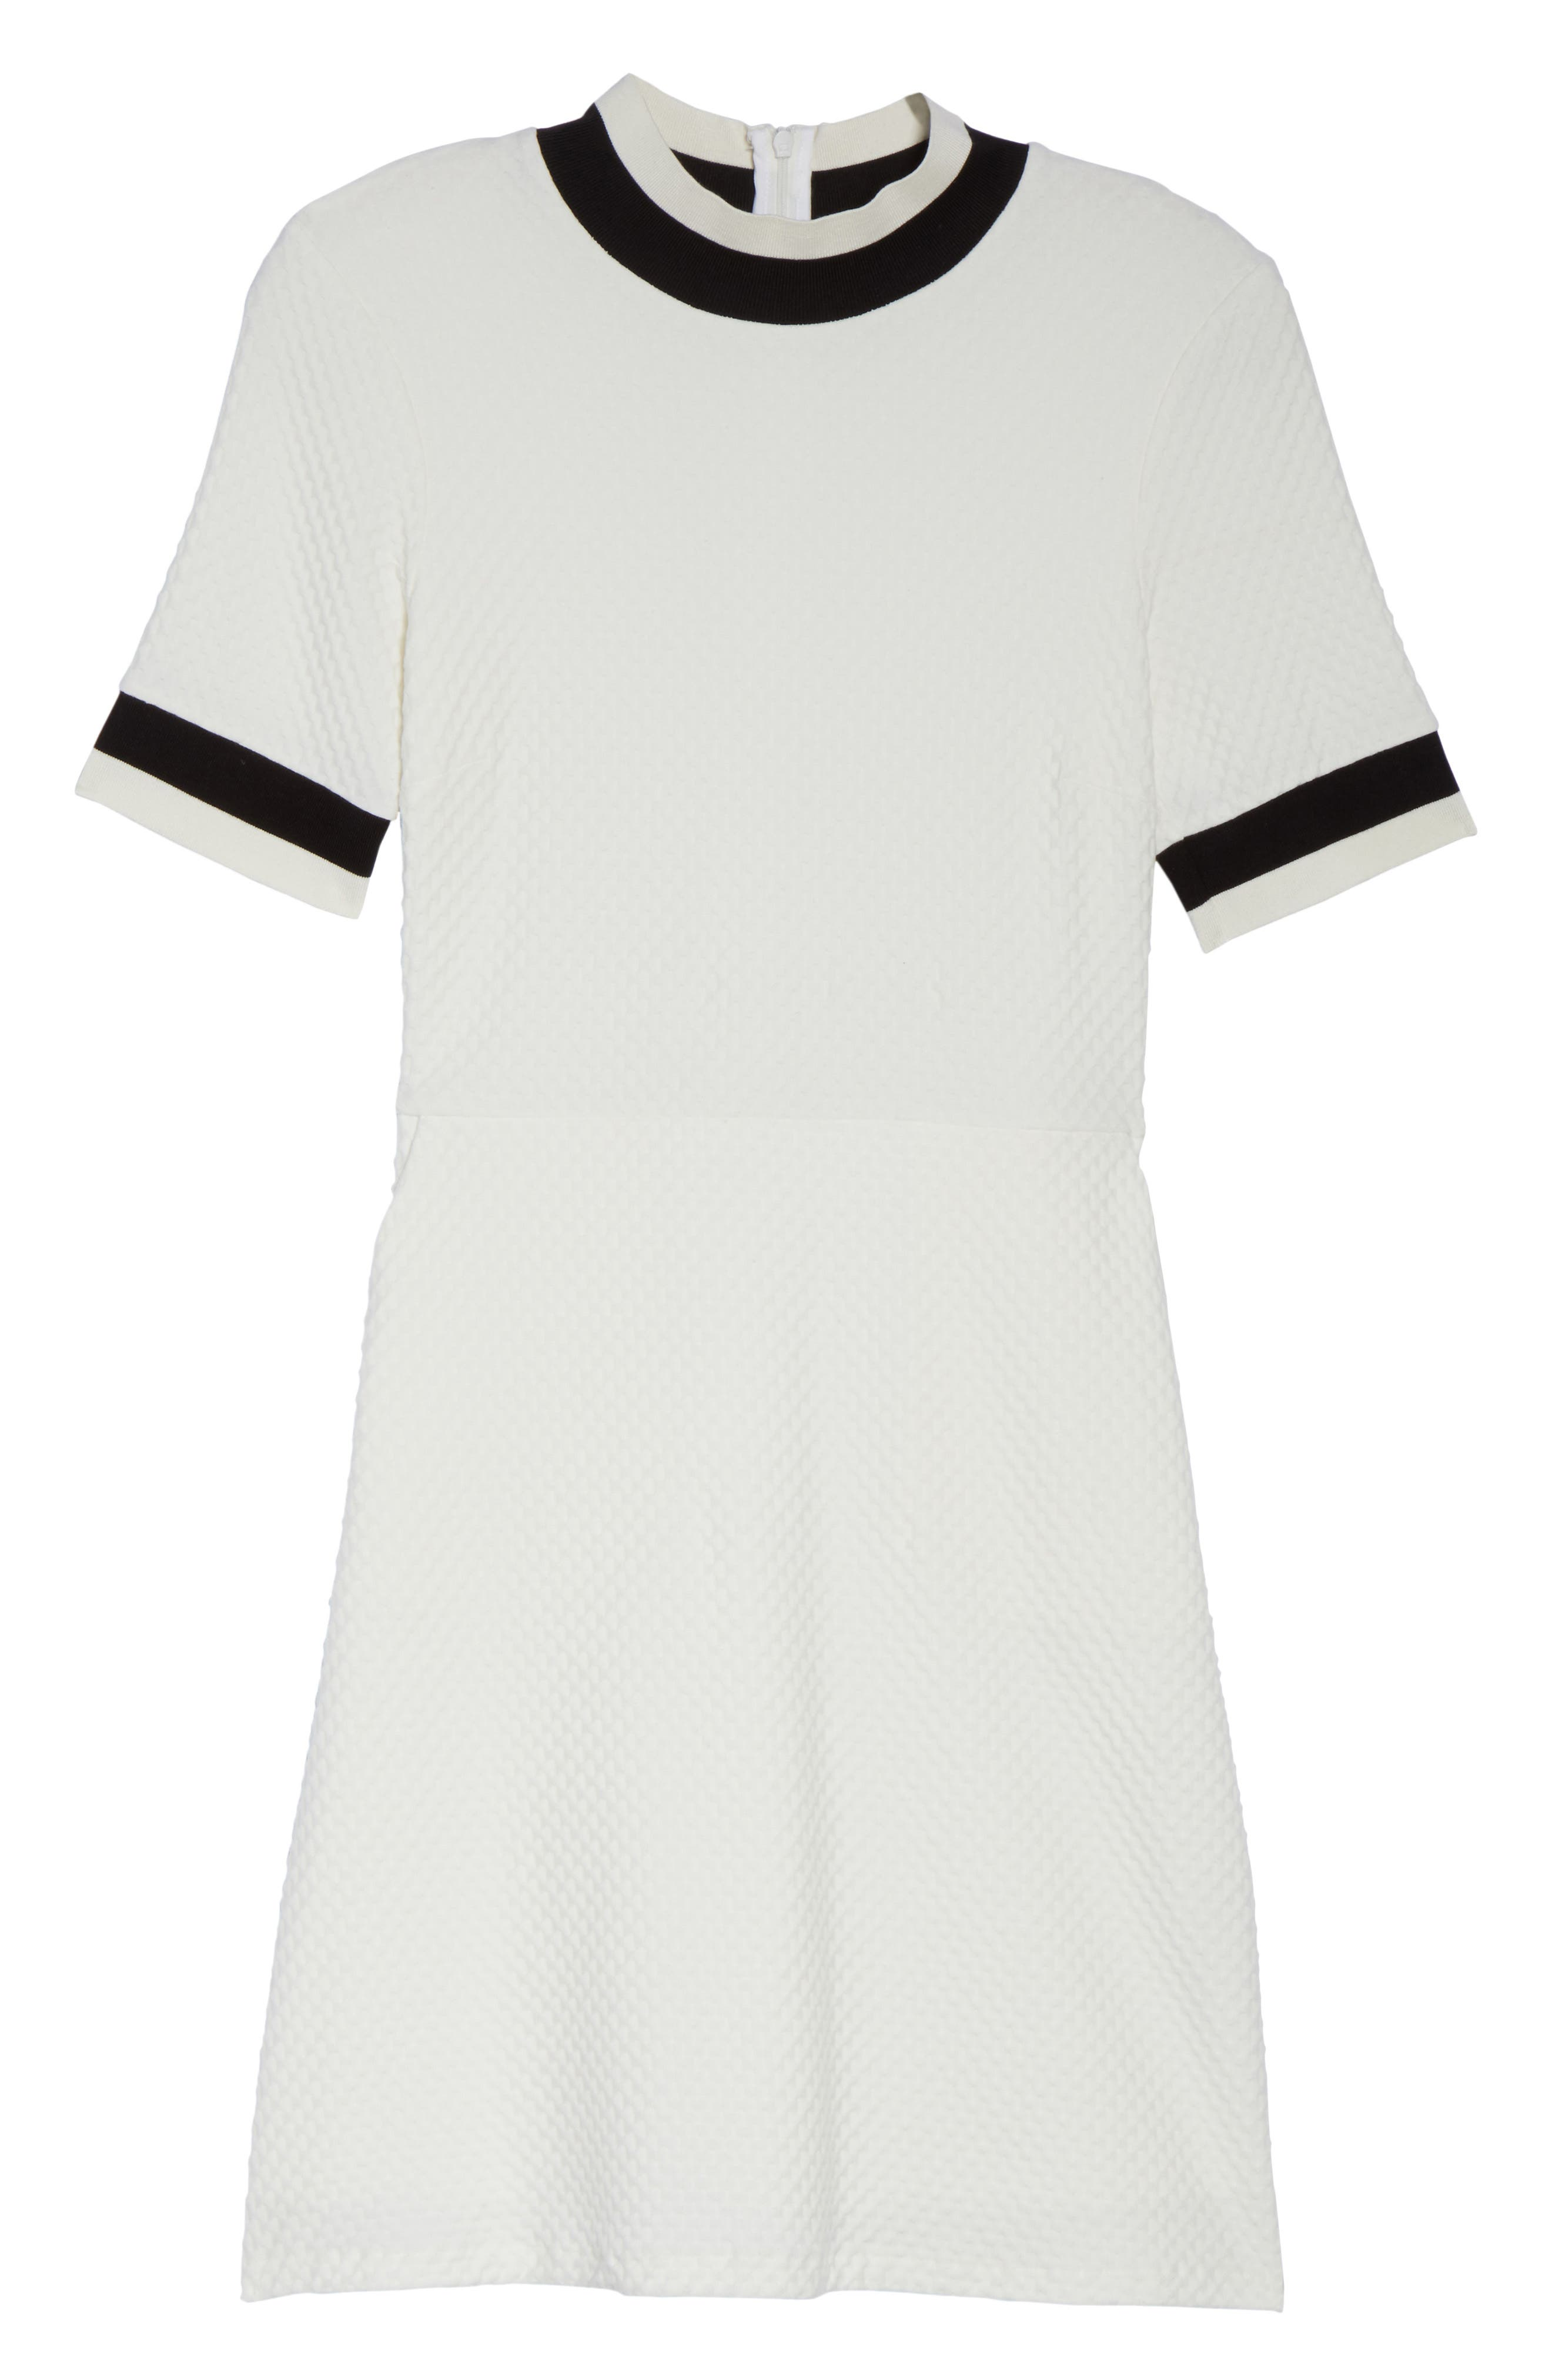 FRENCH CONNECTION, Savos Sudan Jersey Dress, Alternate thumbnail 7, color, BLACK/ SUMMER WHITE